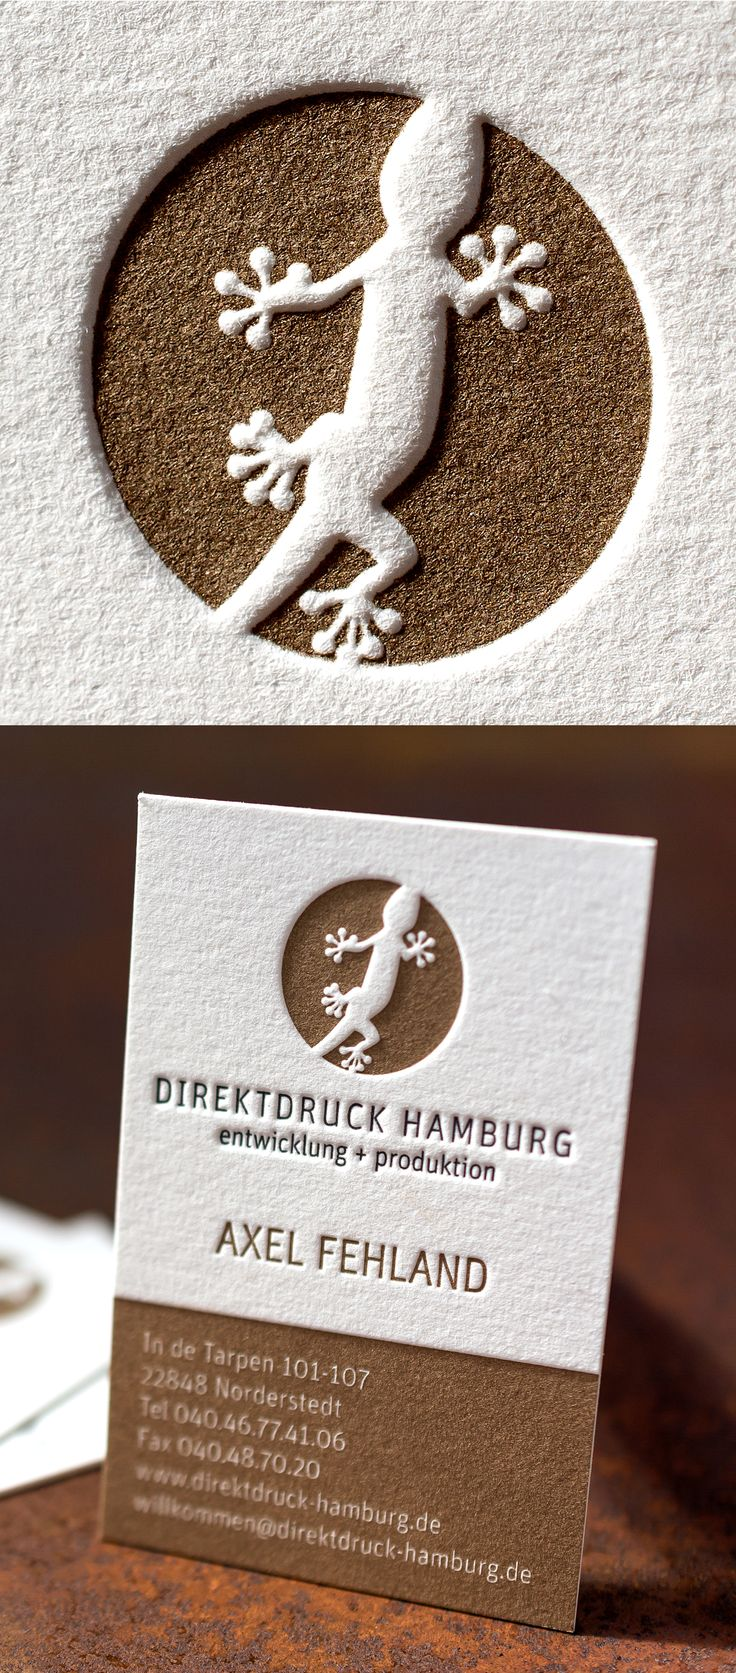 Finest Letterpress with deep impressions  | Letterpress Manufaktur Hamburg